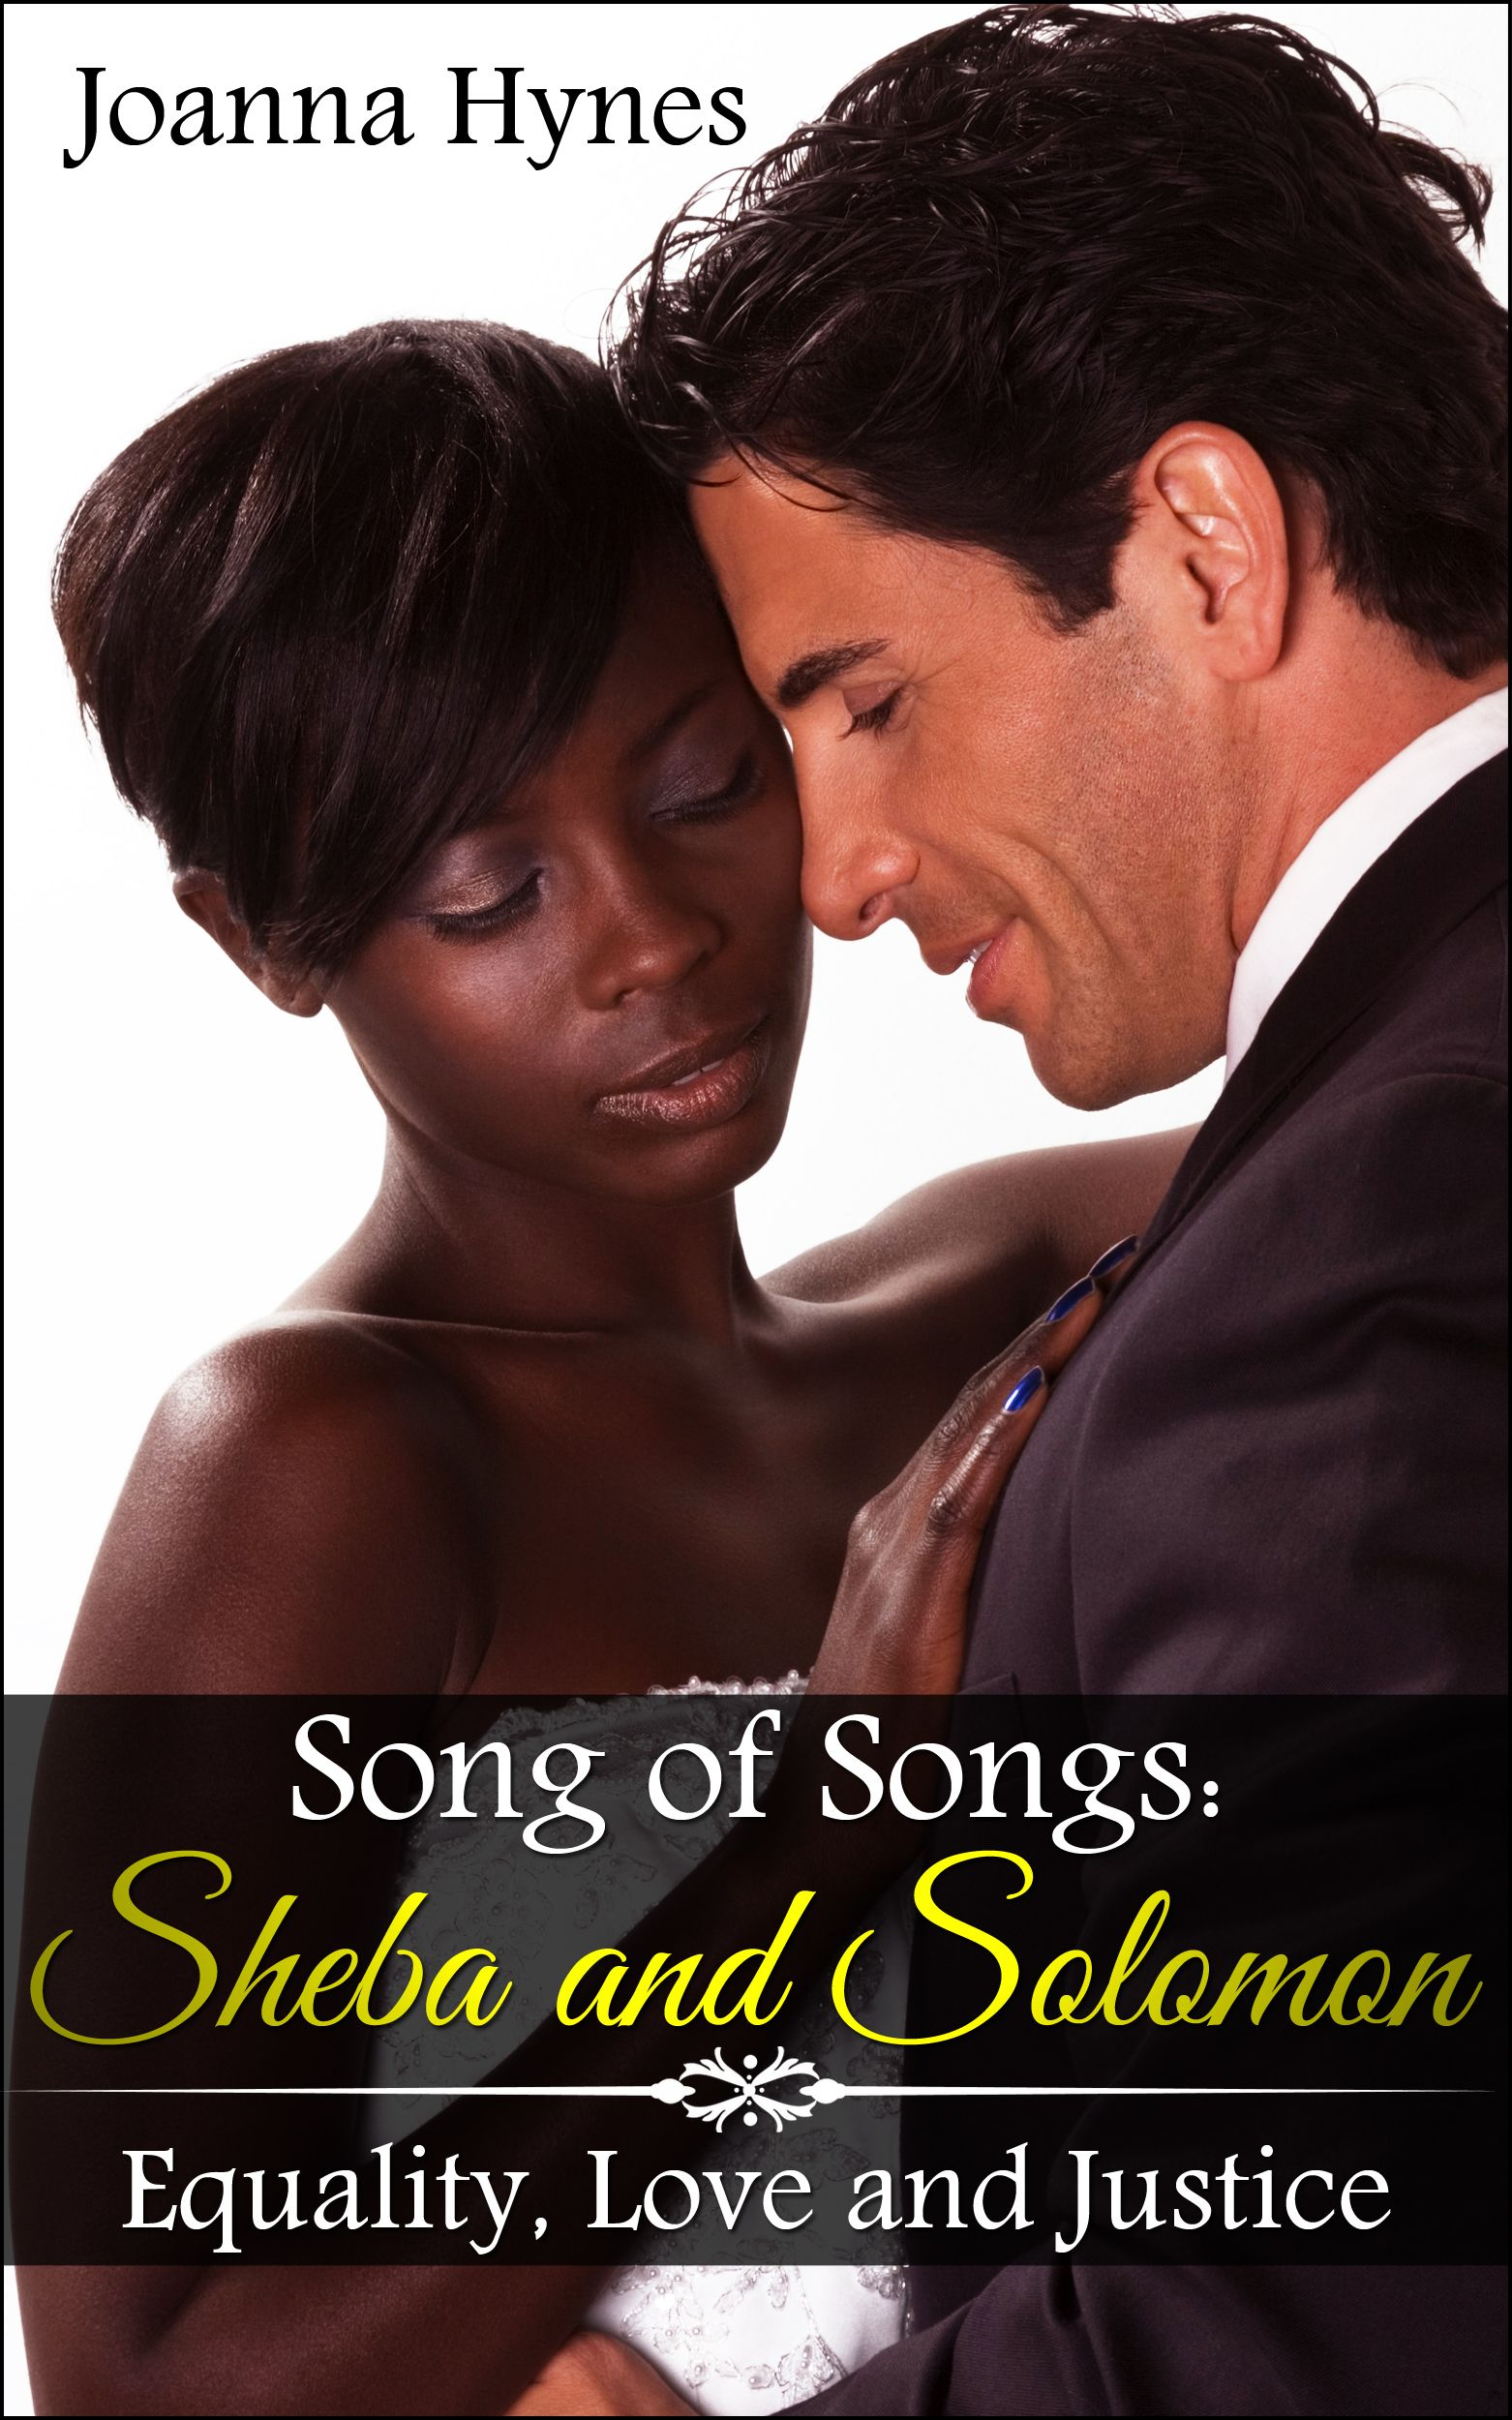 Songs about interacial dating